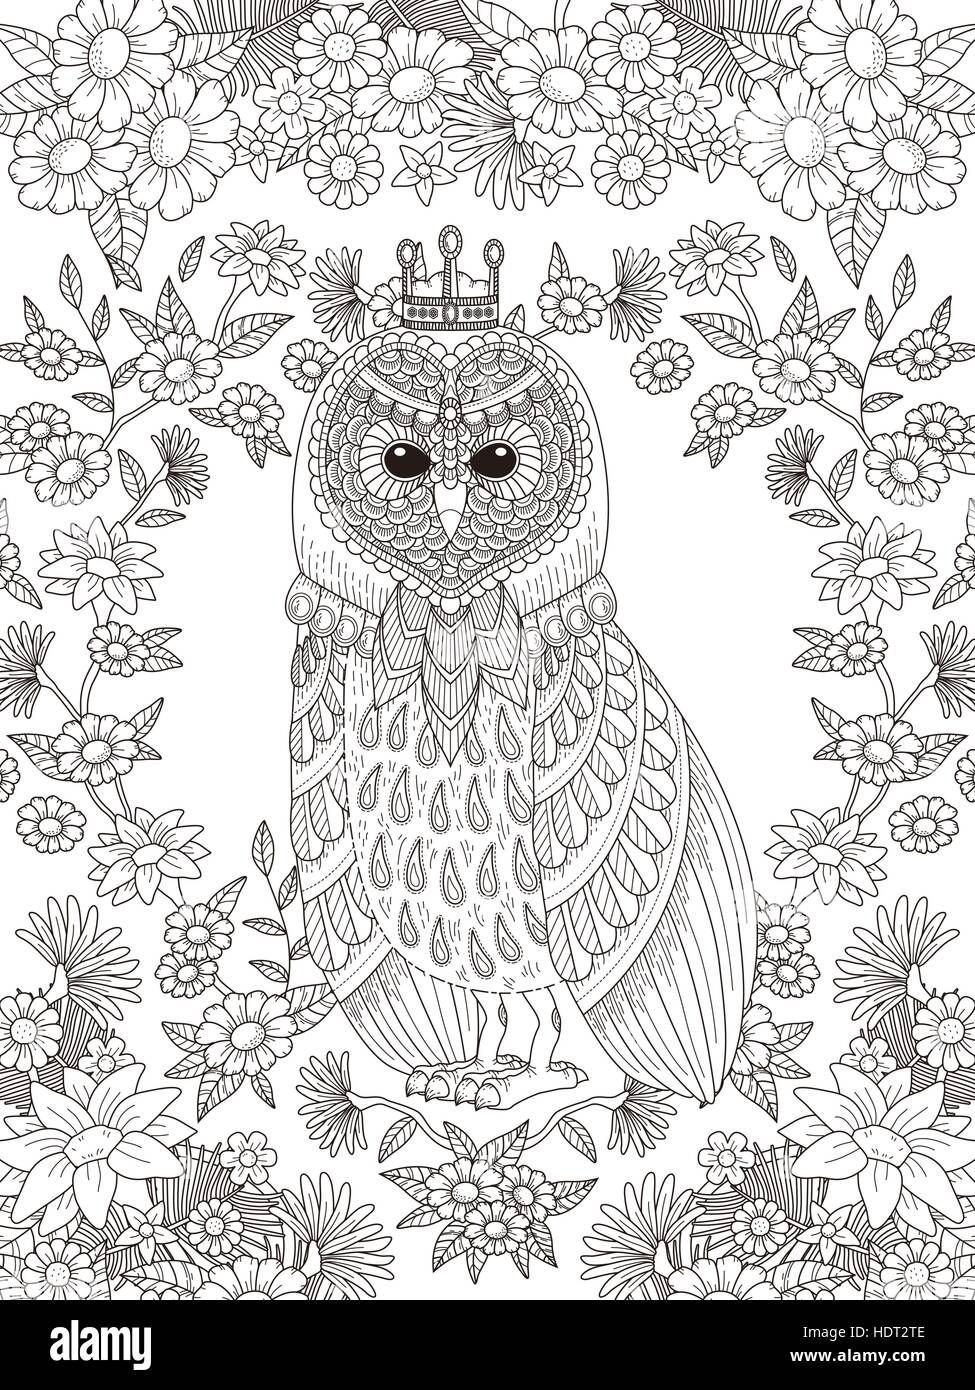 lovely owl coloring page with floral elements in exquisite line HDT2TE